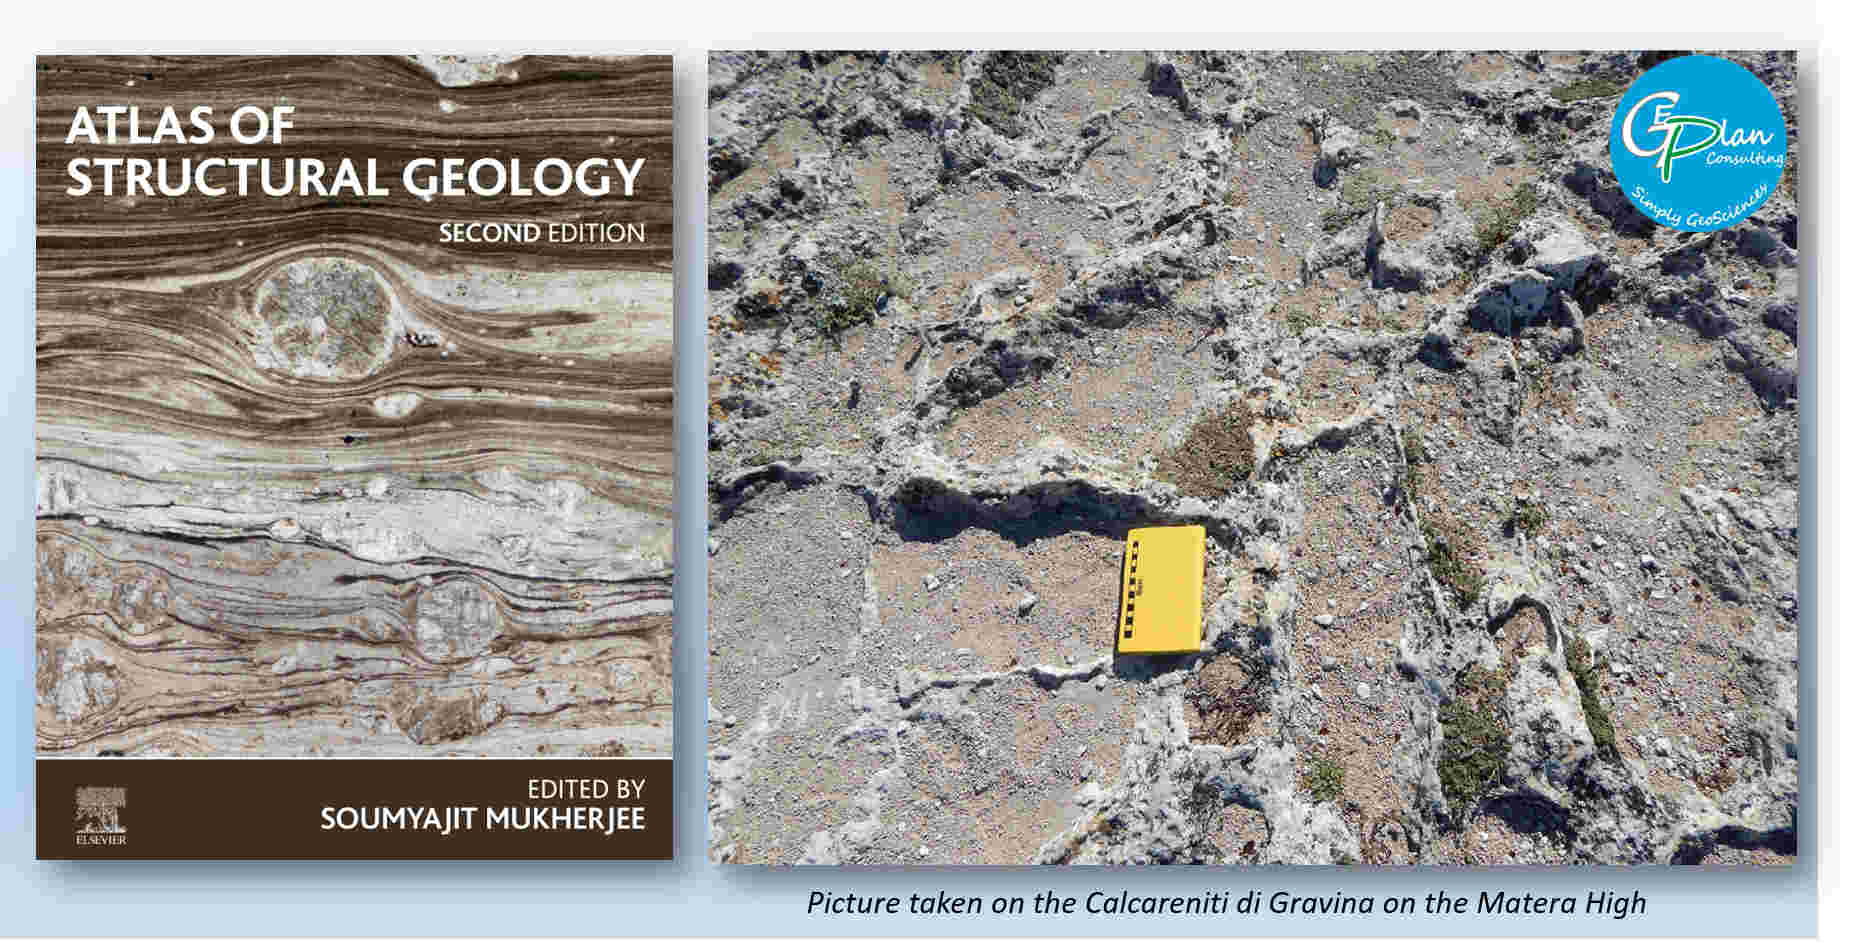 2nd edition Atlas of Structural Geology contribution